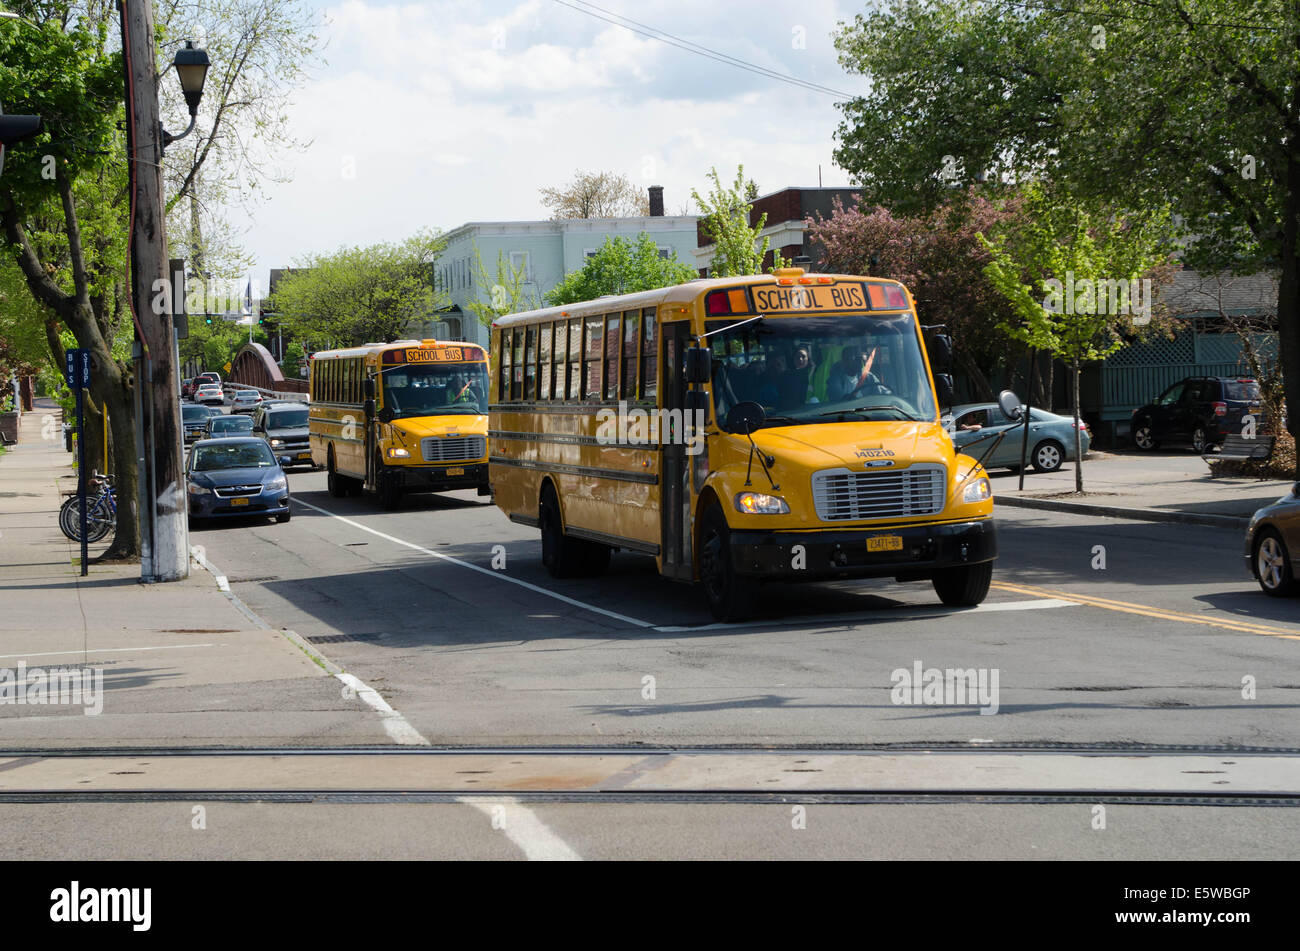 School buses stop at railroad intersection. - Stock Image